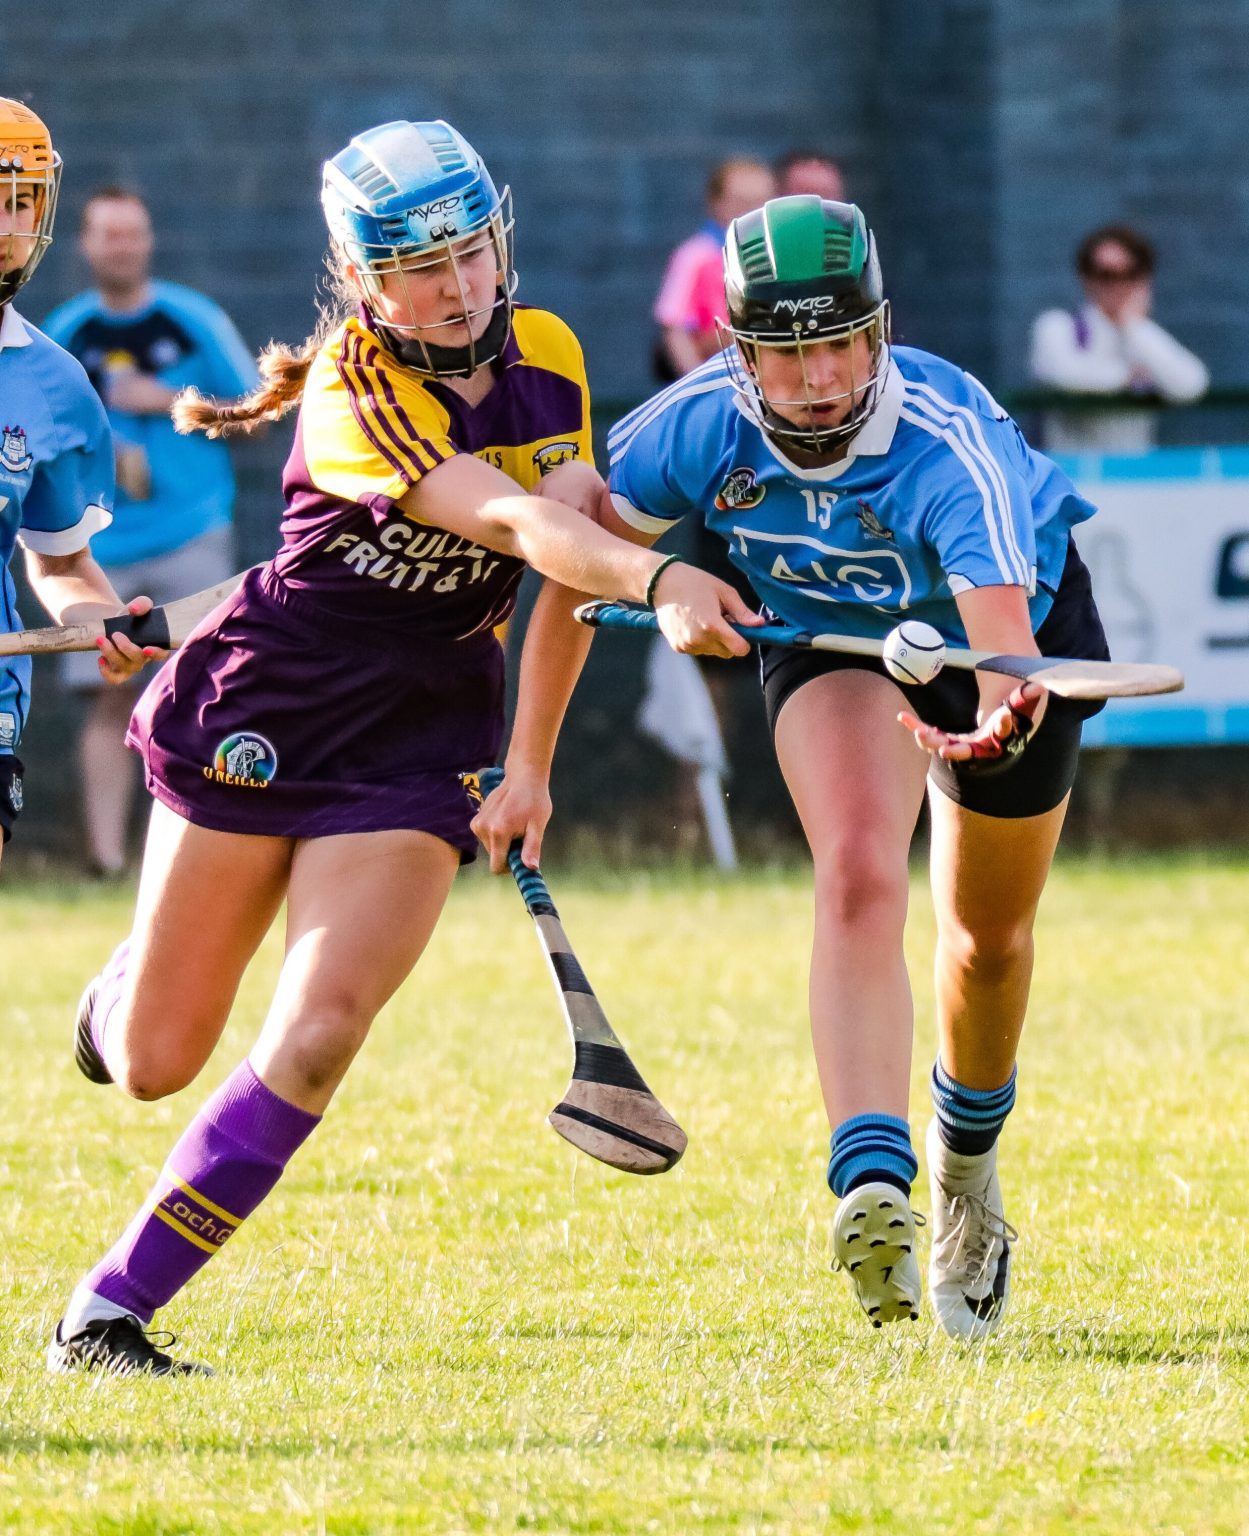 A Dublin Camogie player in a sky blue jersey, navy skort and black and green helmet and a Wexford players in a purple and gold jersey and purple skort battle for the ball in the Leinster Minor Camogie semi final